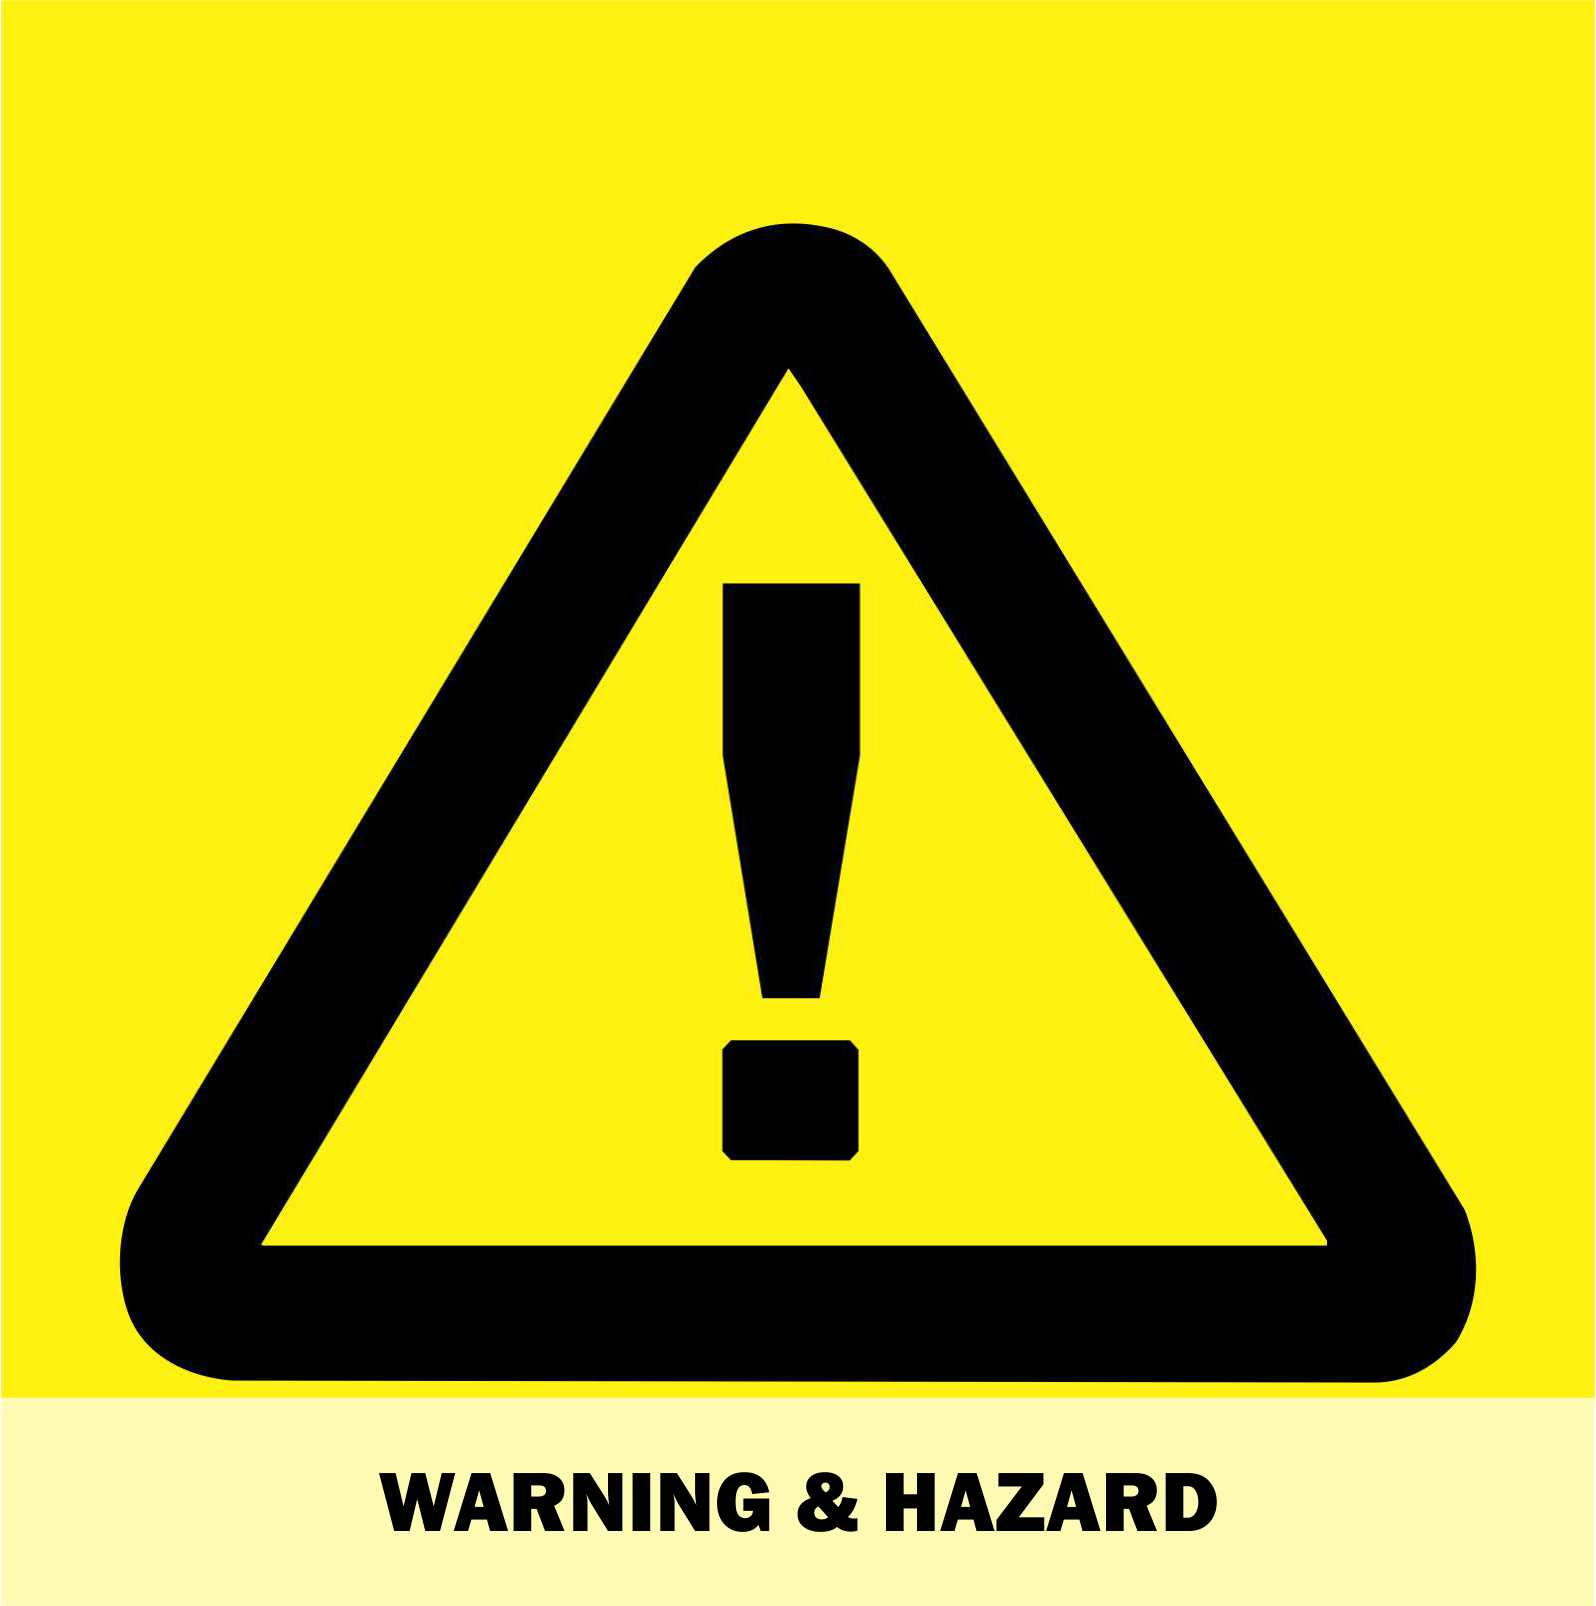 Warning & Hazard